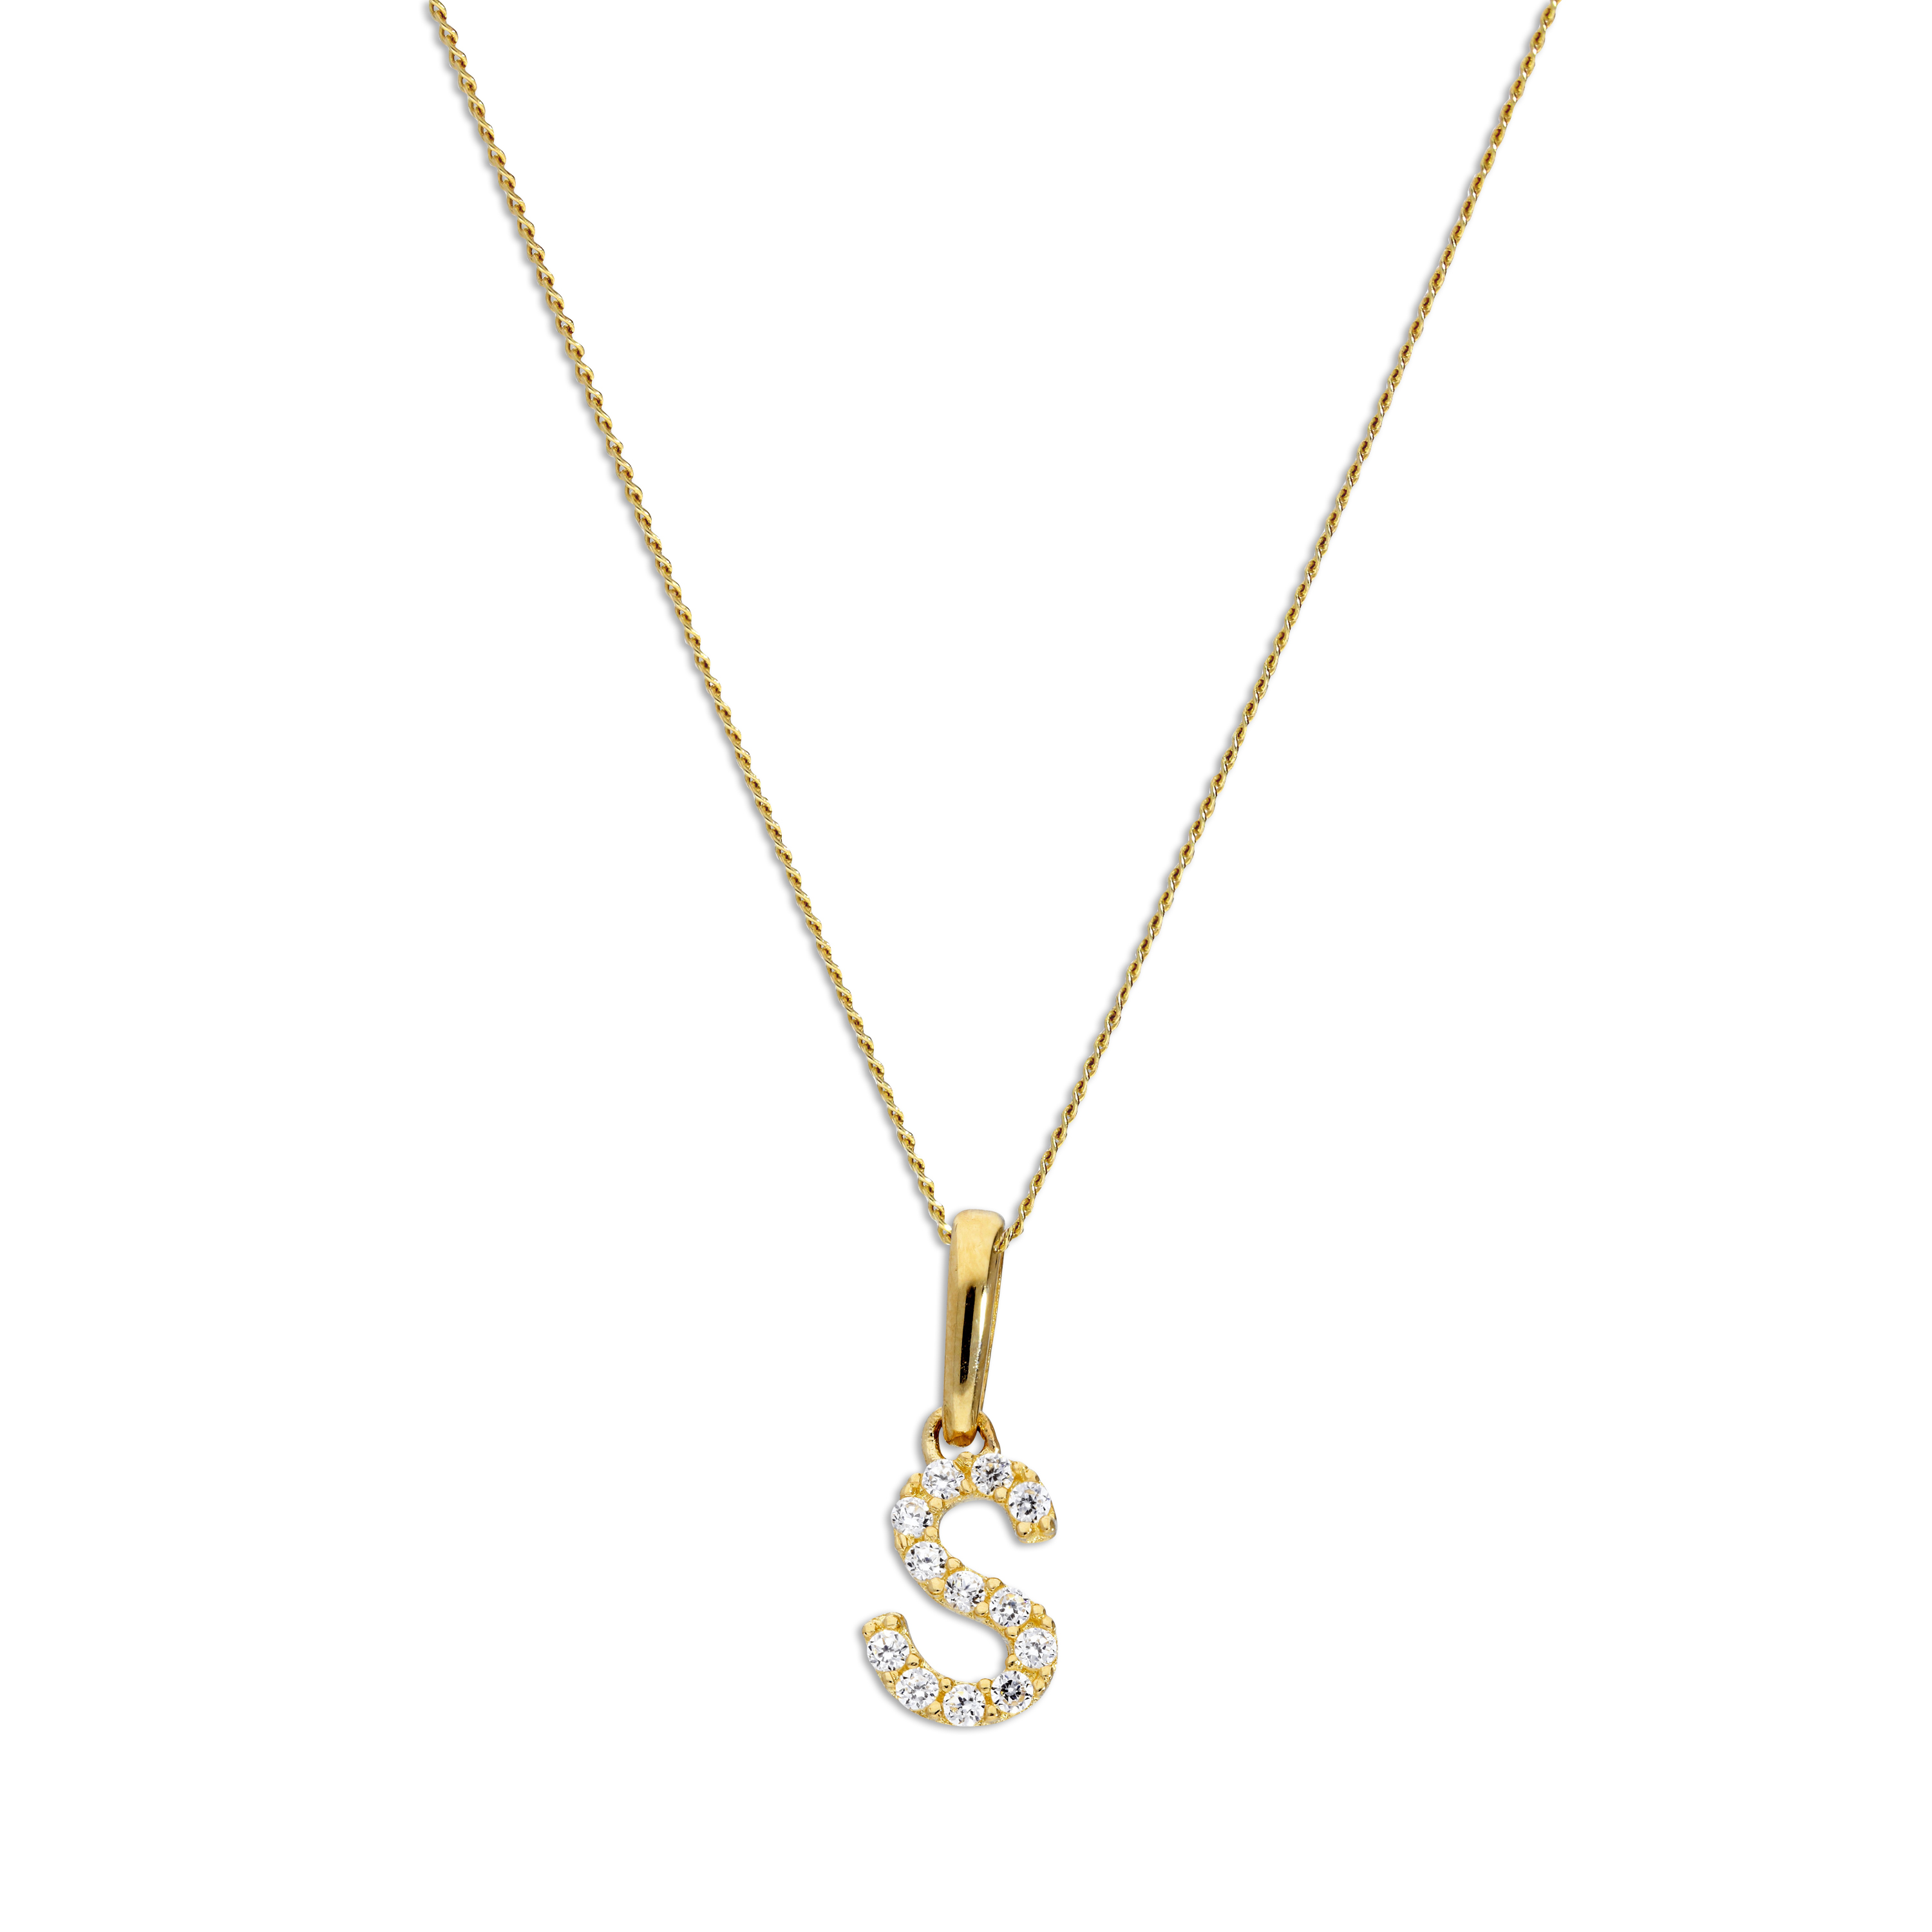 An image of 9ct Gold Clear CZ Crystal Script Alphabet Letter S Necklace 16 Inches Chain